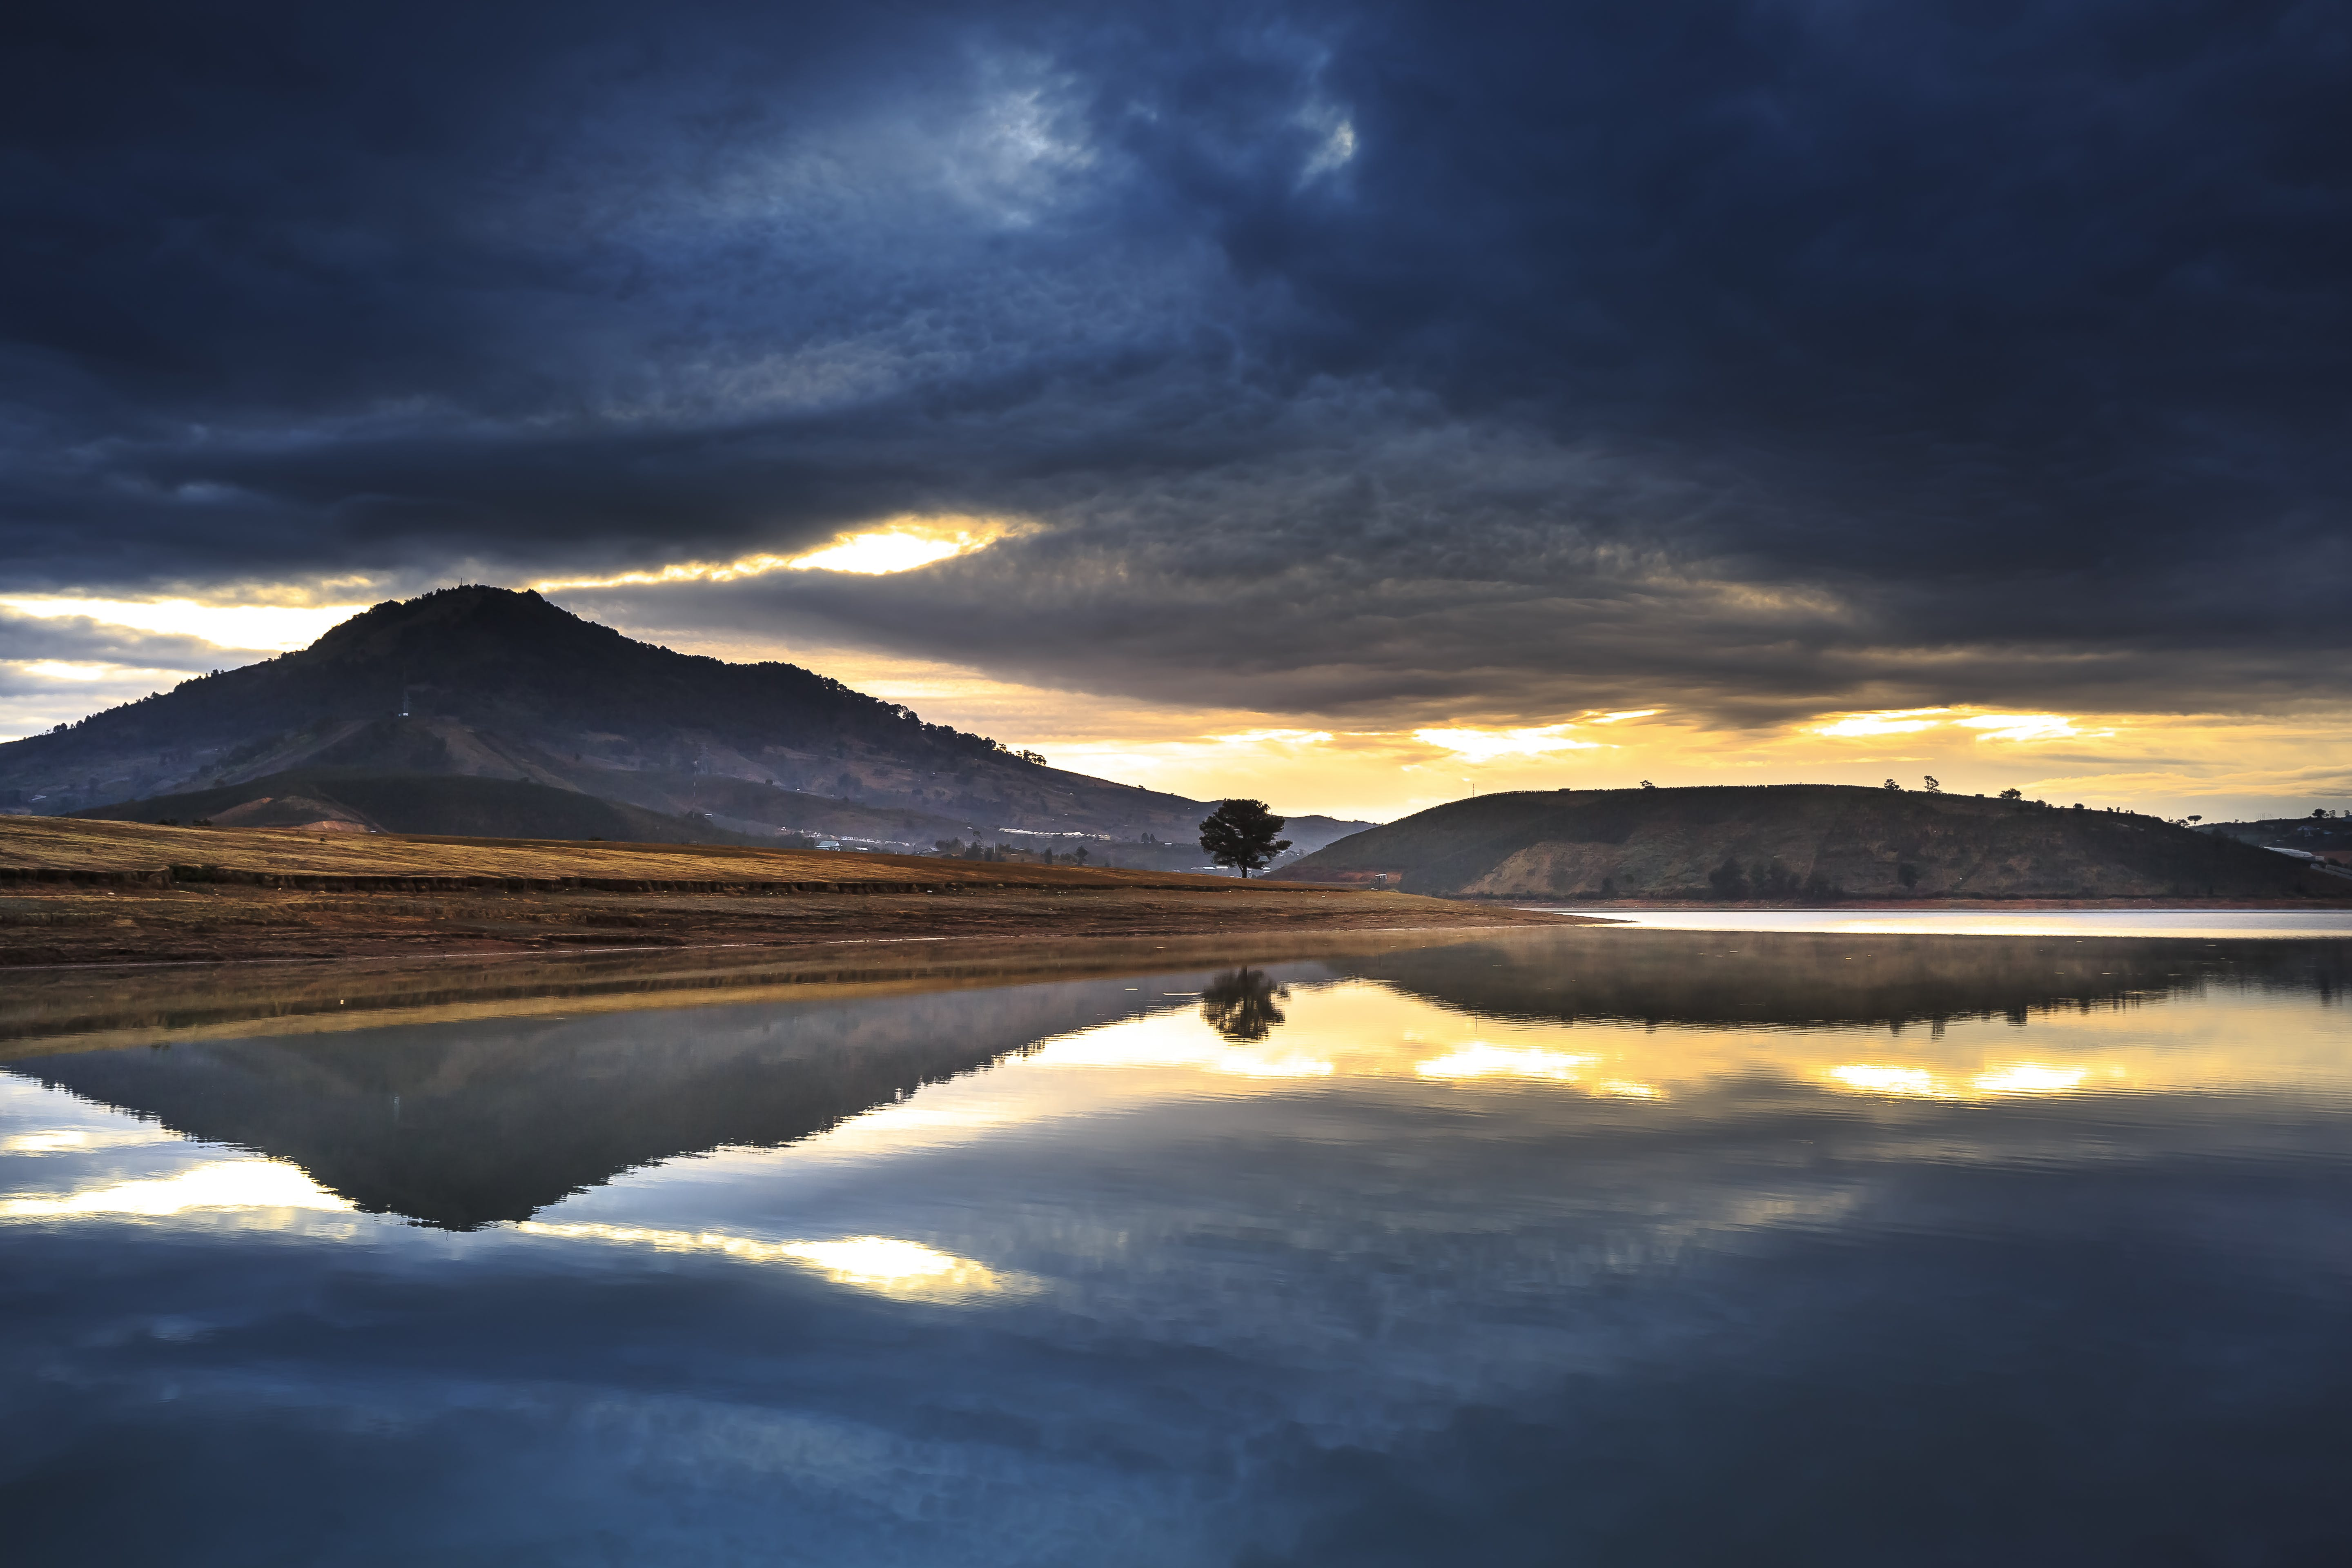 Mountain Reflection on Body of Water